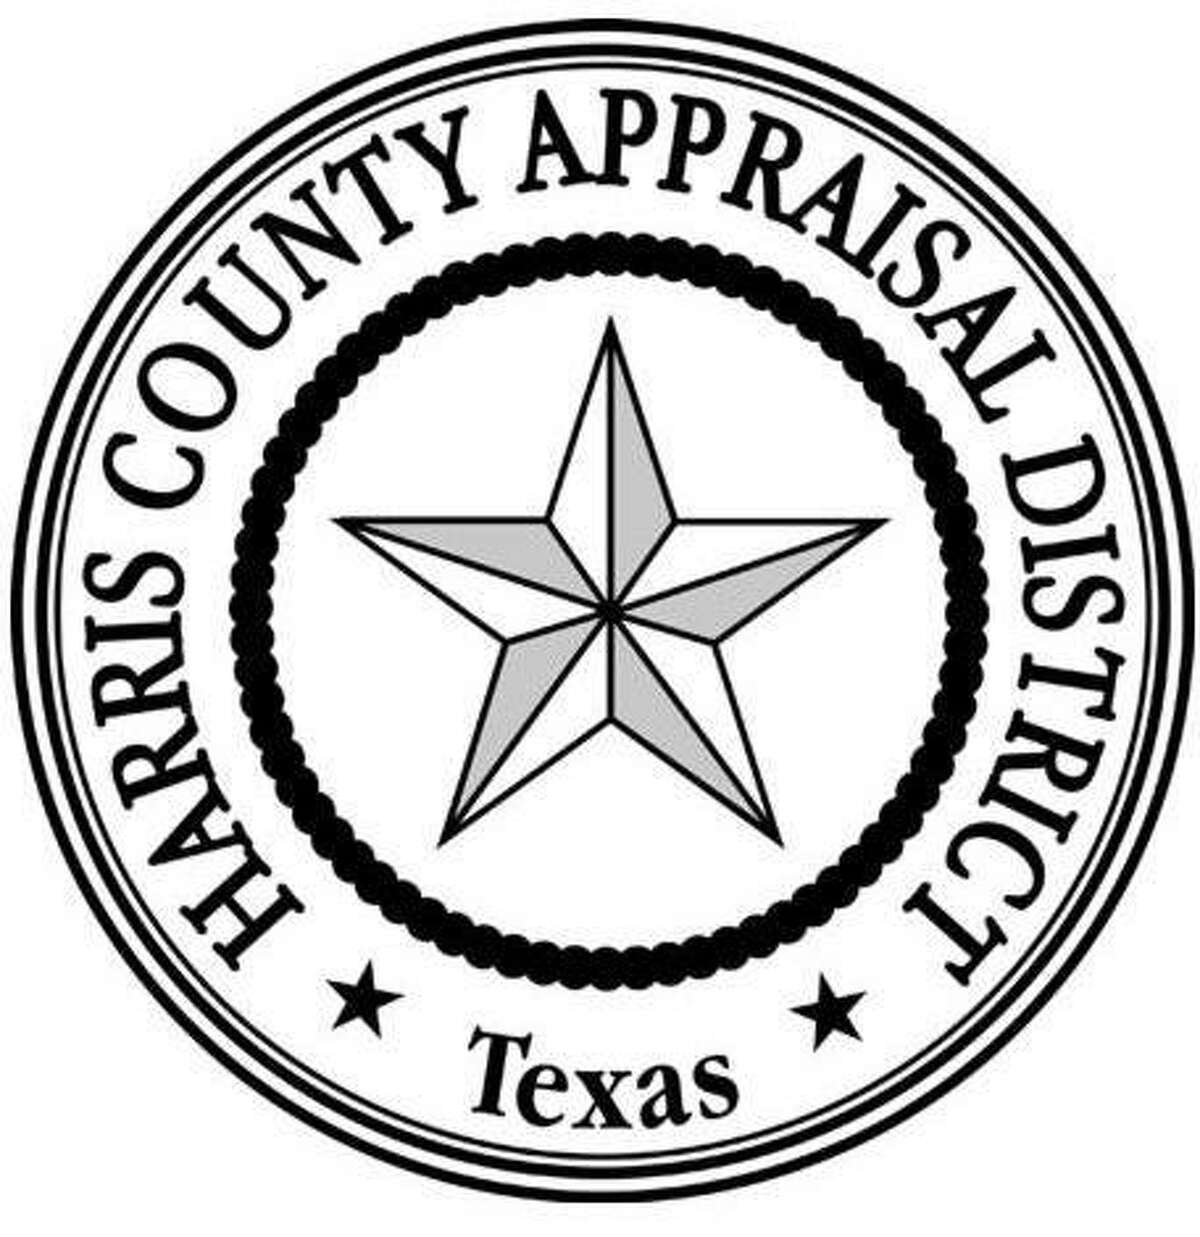 The Harris County Appraisal District sets property values and handles protests by homeowners who believe those values are too high. There are several ways to protest.